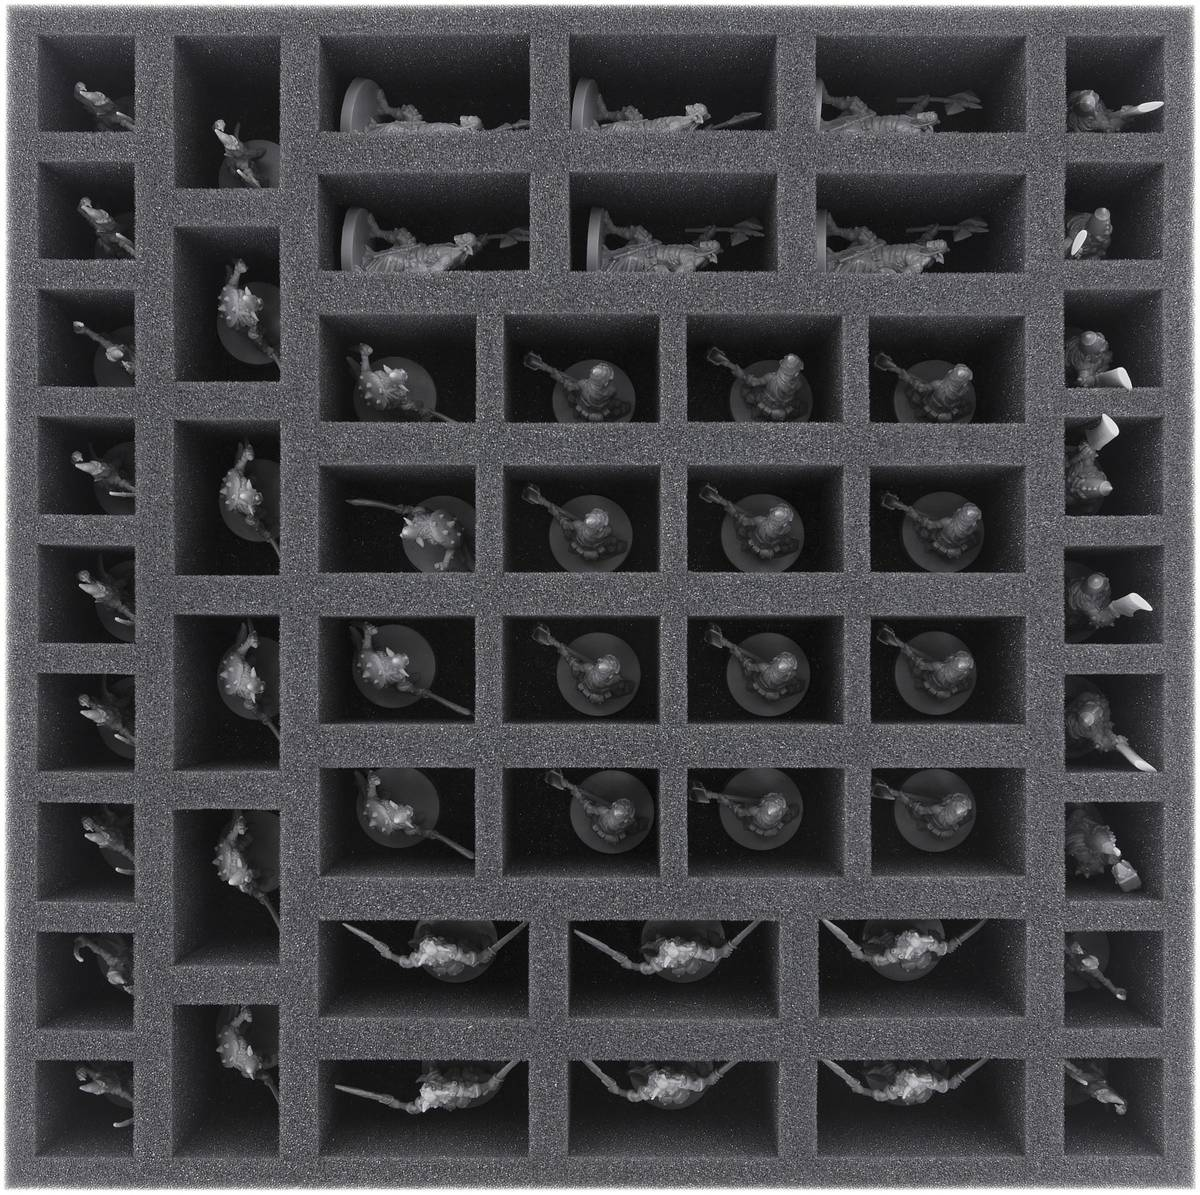 BHKX055BO 55 mm foam tray with 52 compartments for Massive Darkness - Units